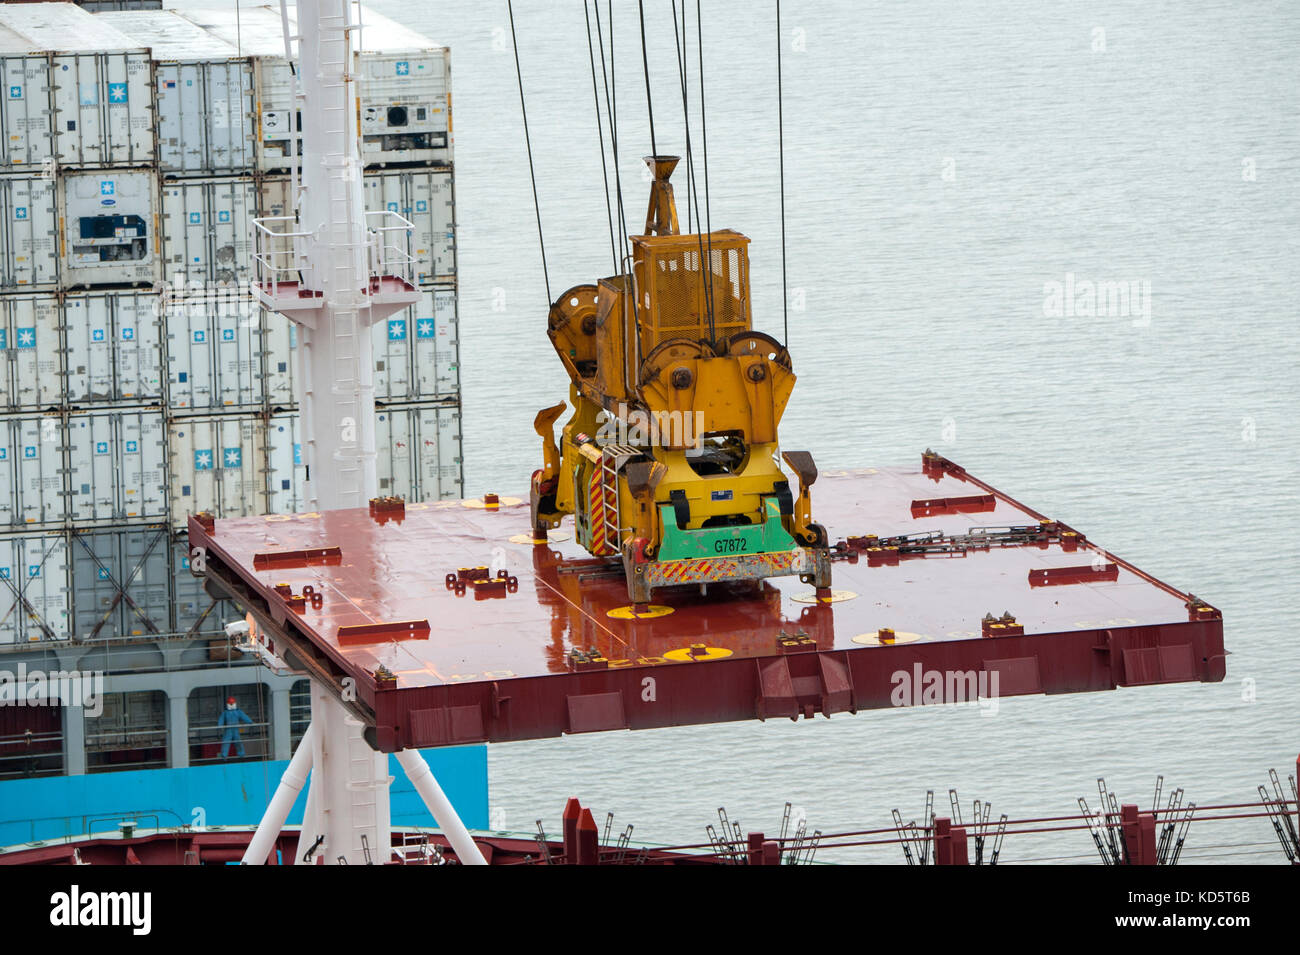 Hatch cover being craned into position on a container ship